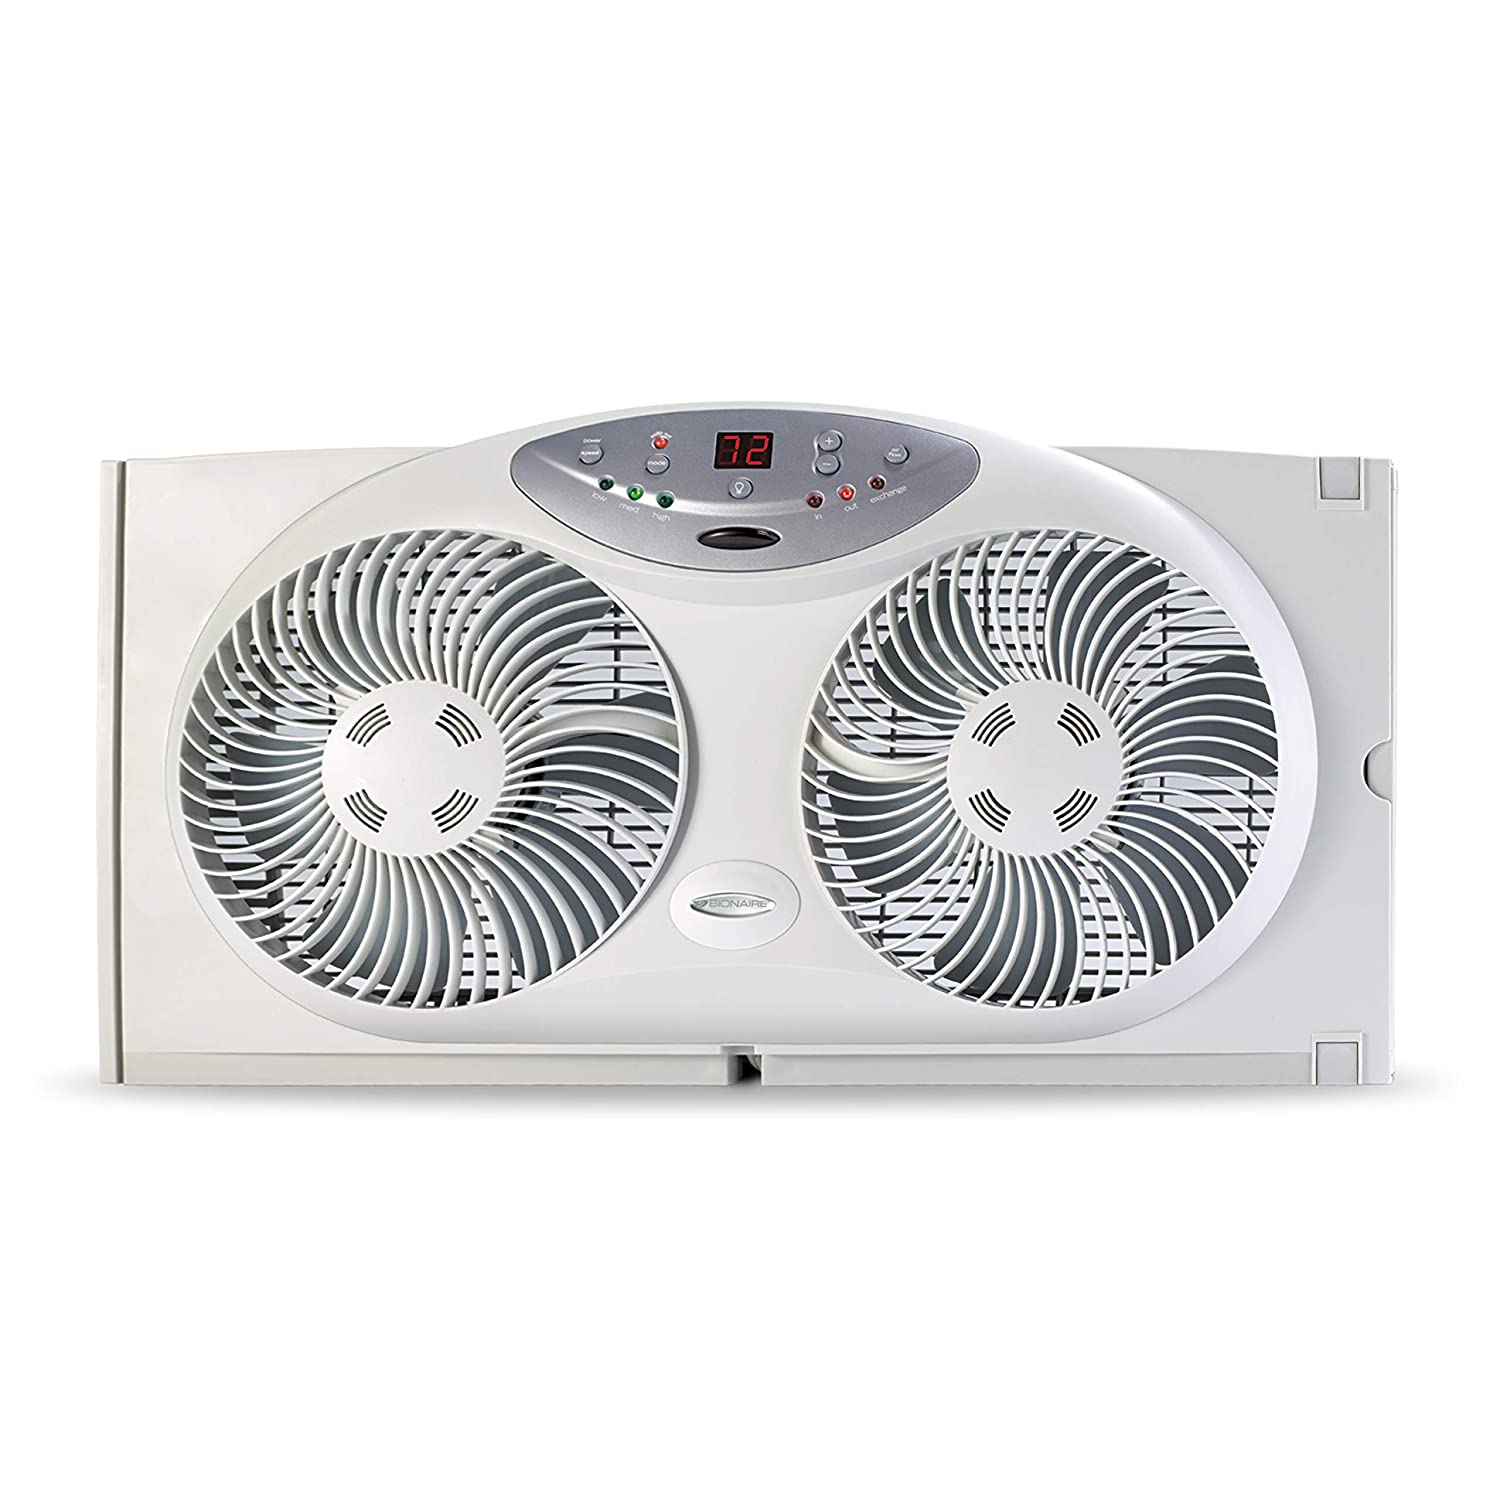 Top 7 Best Window Fan For Cooling (2020 Reviews & Buying Guide) 7